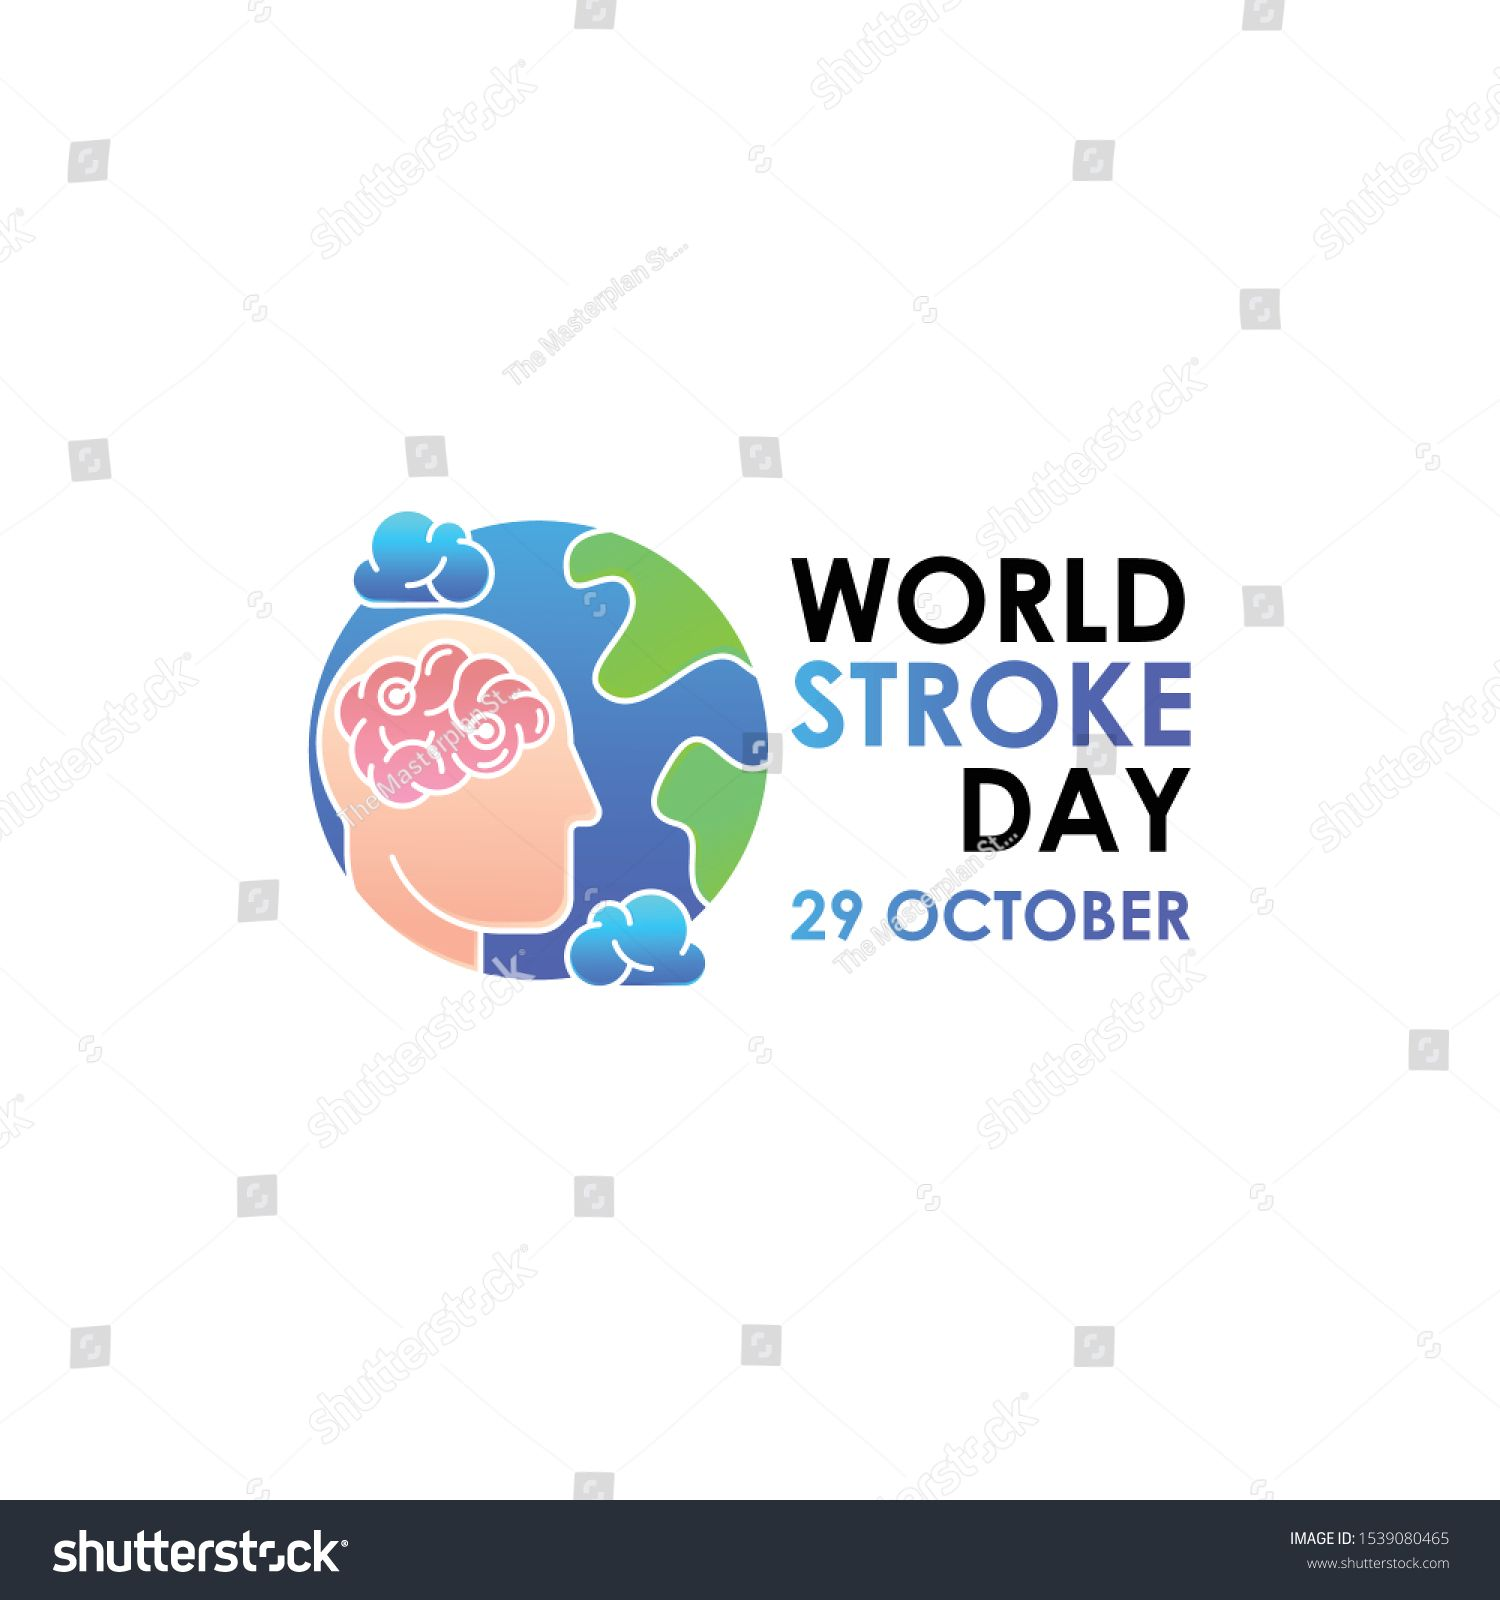 World Stroke Day Vector Logo Poster Illustration Of World Stroke Day On October 29th Health Care Awareness C World Stroke Day Vector Logo Awareness Campaign